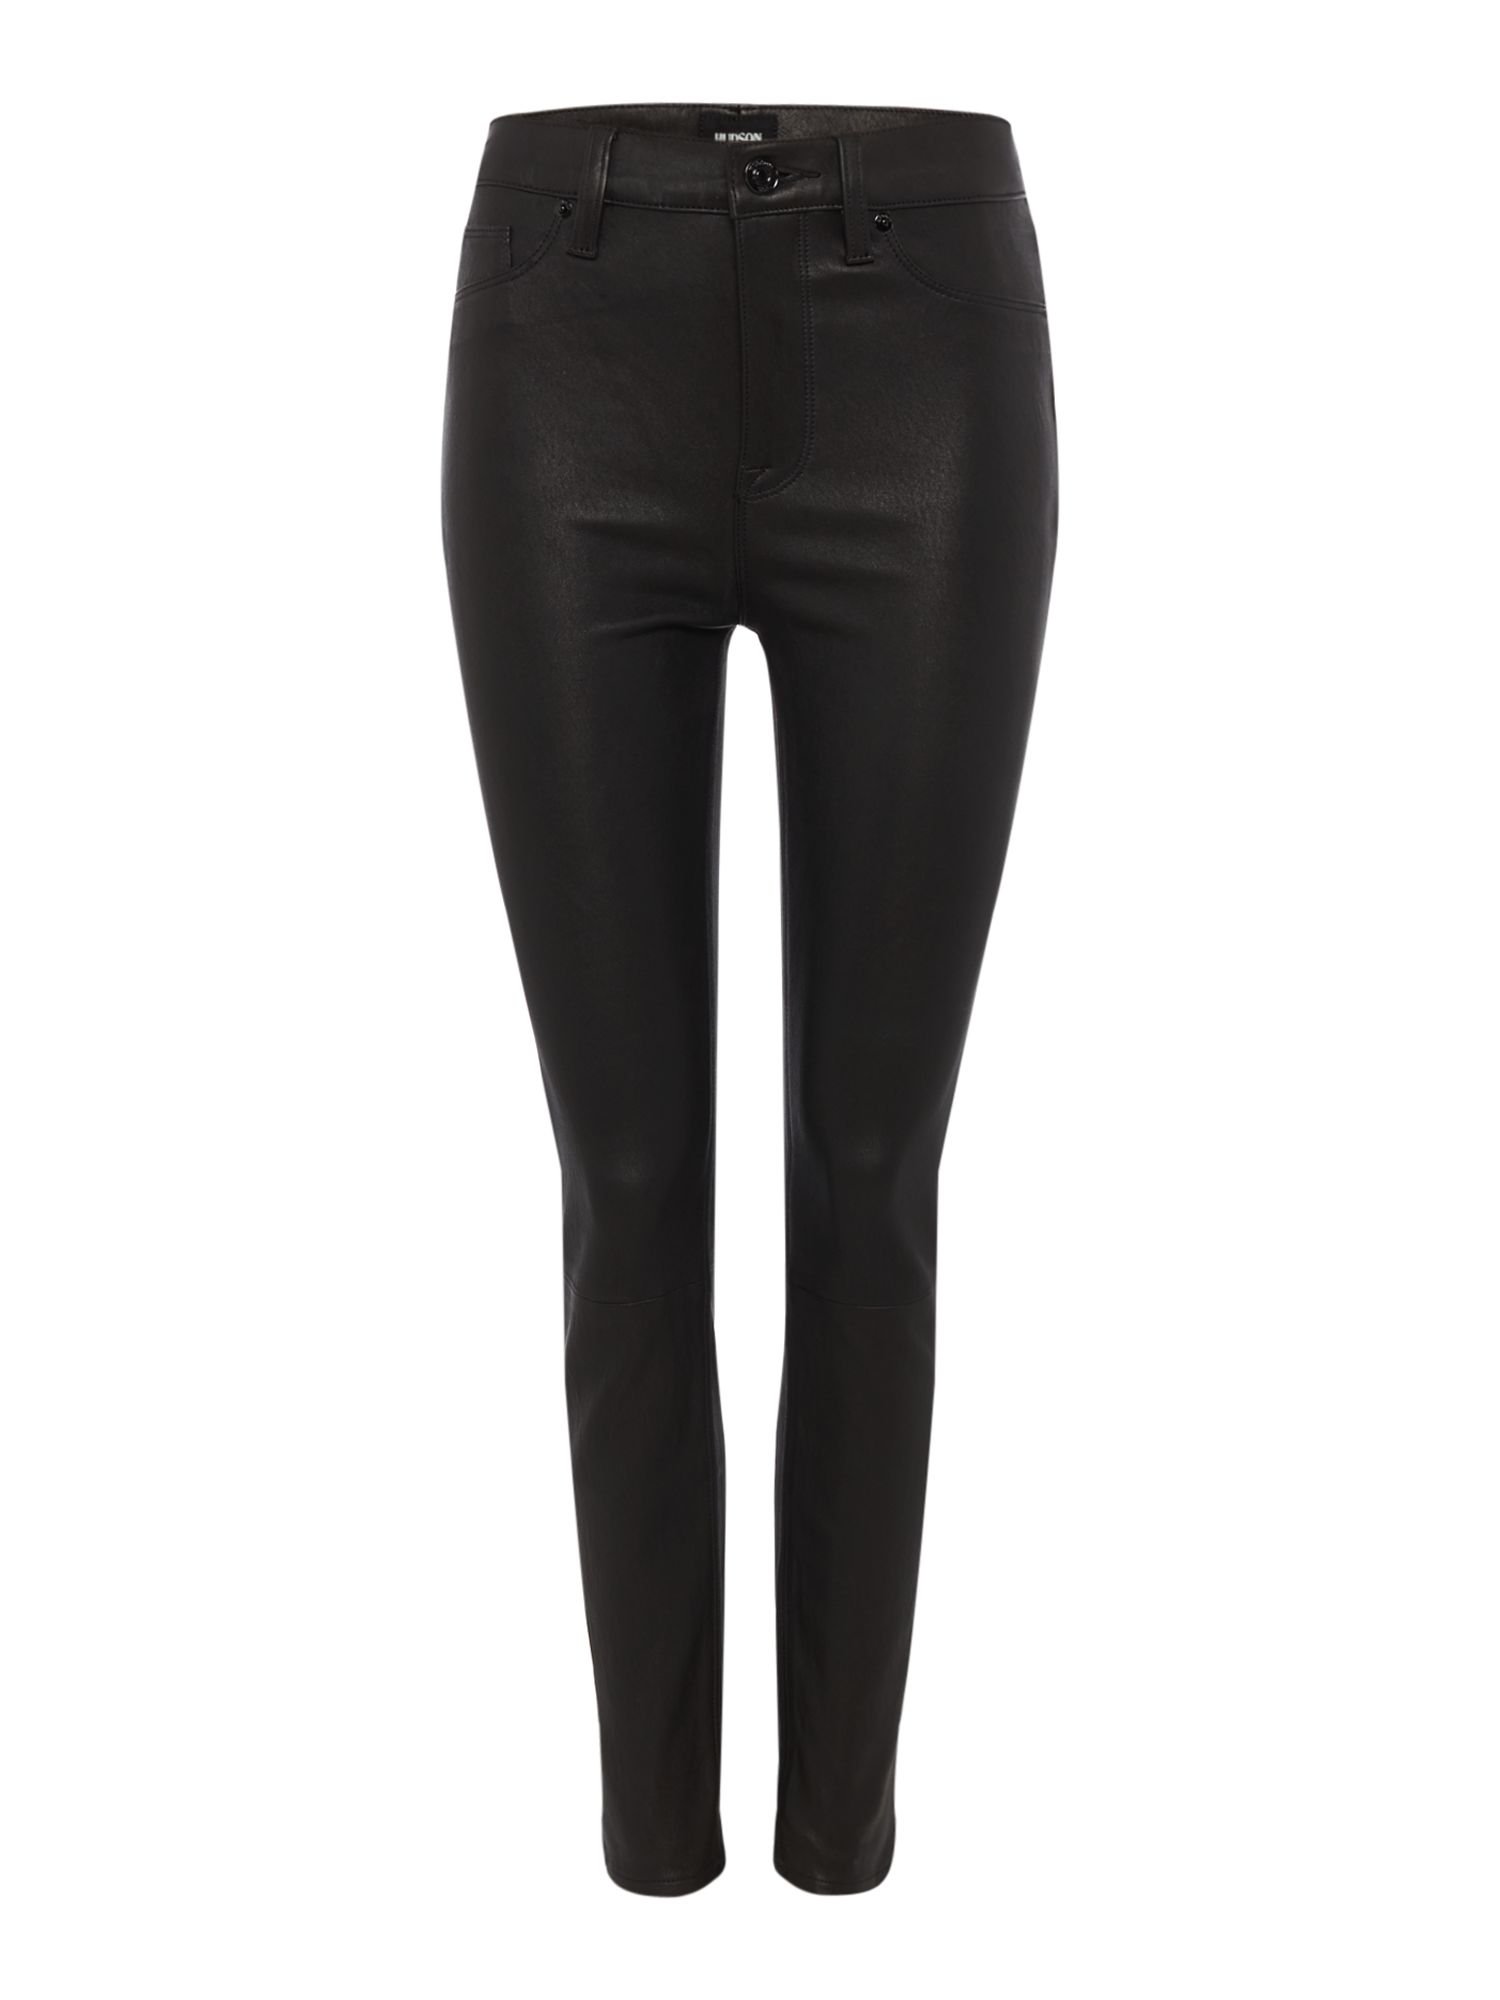 Barbara High Waist Leather Super Skinny Jeans, Black